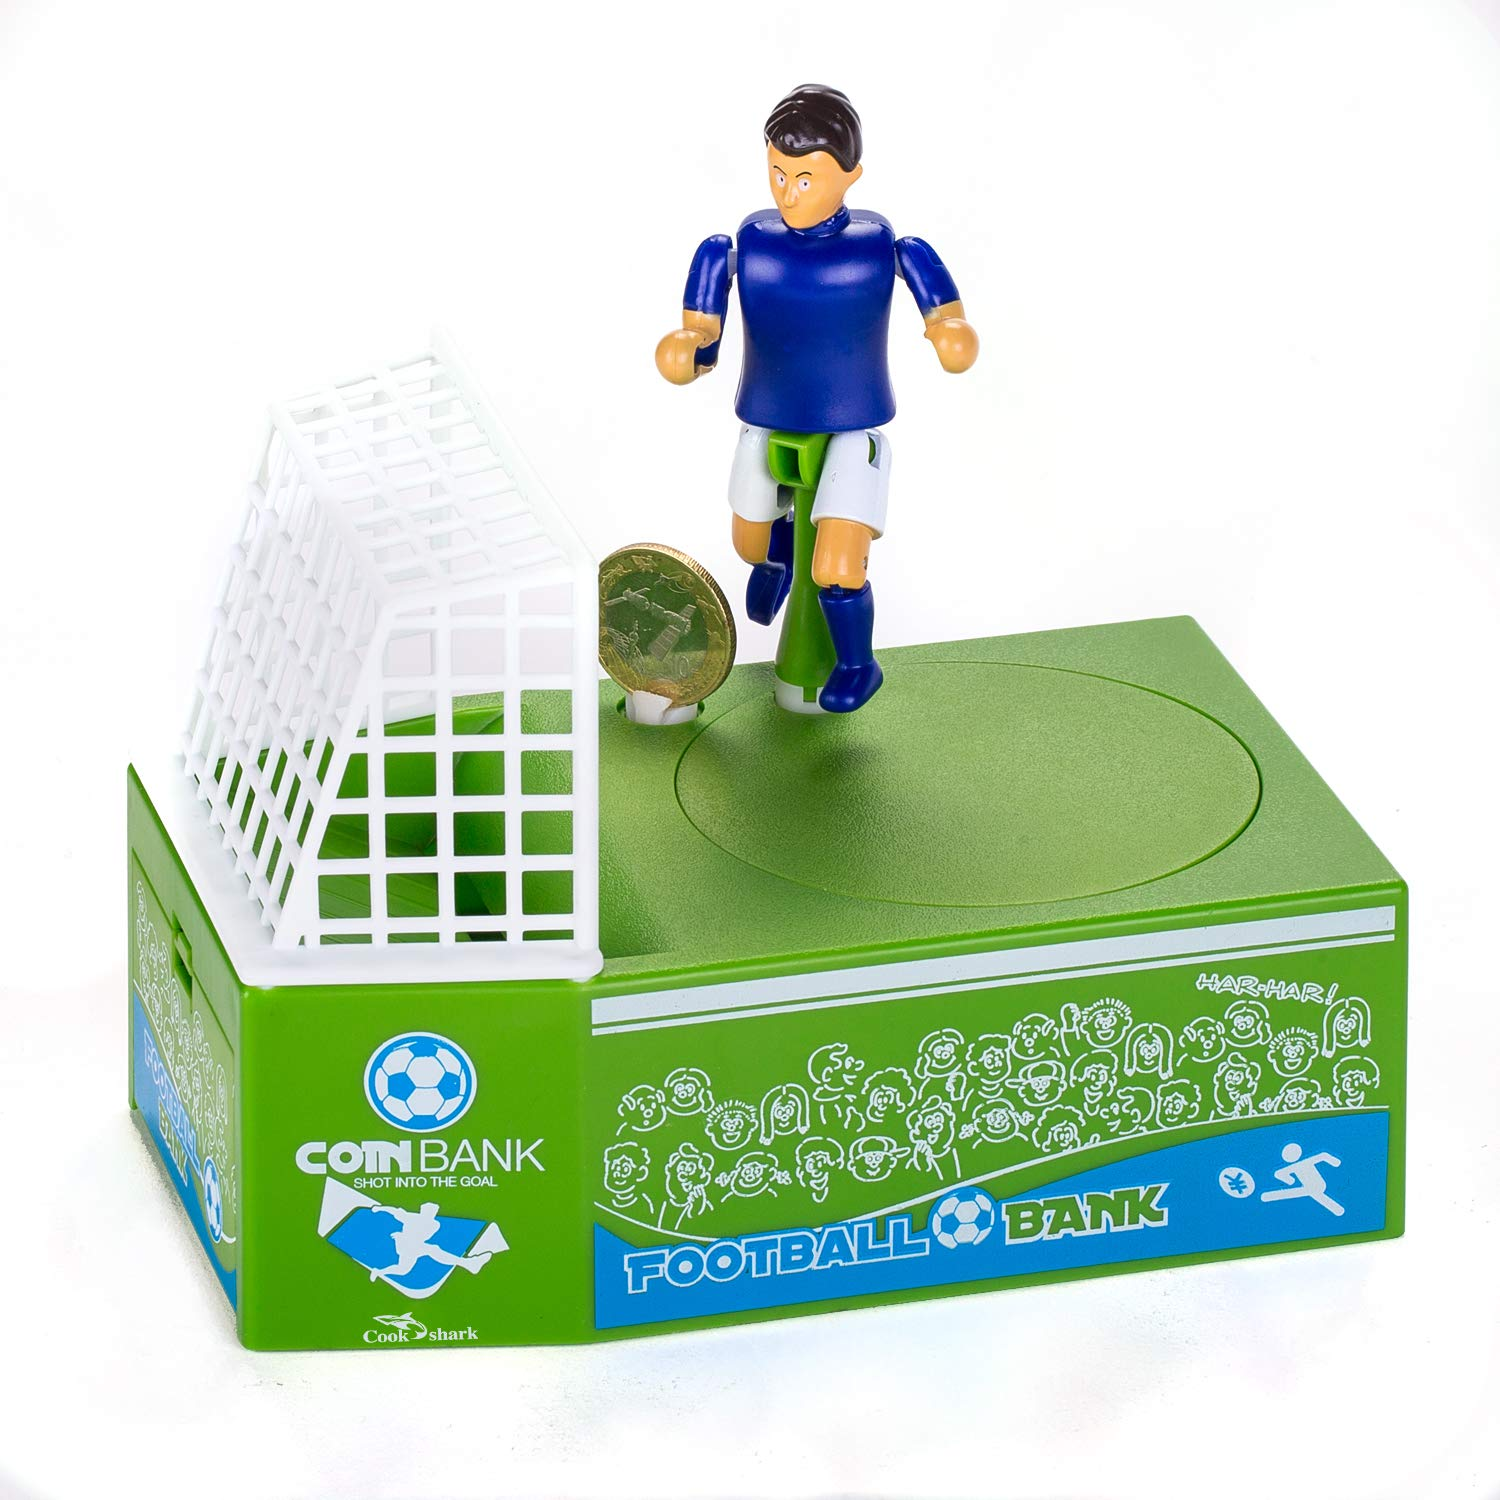 Cestlafit Cute Soccer Shooting Coin Bank, Coin Munching Toy Money Box, Football Player Toy Coin Bank, Money Saving Box, Money Bank For Kids by Cestlafit